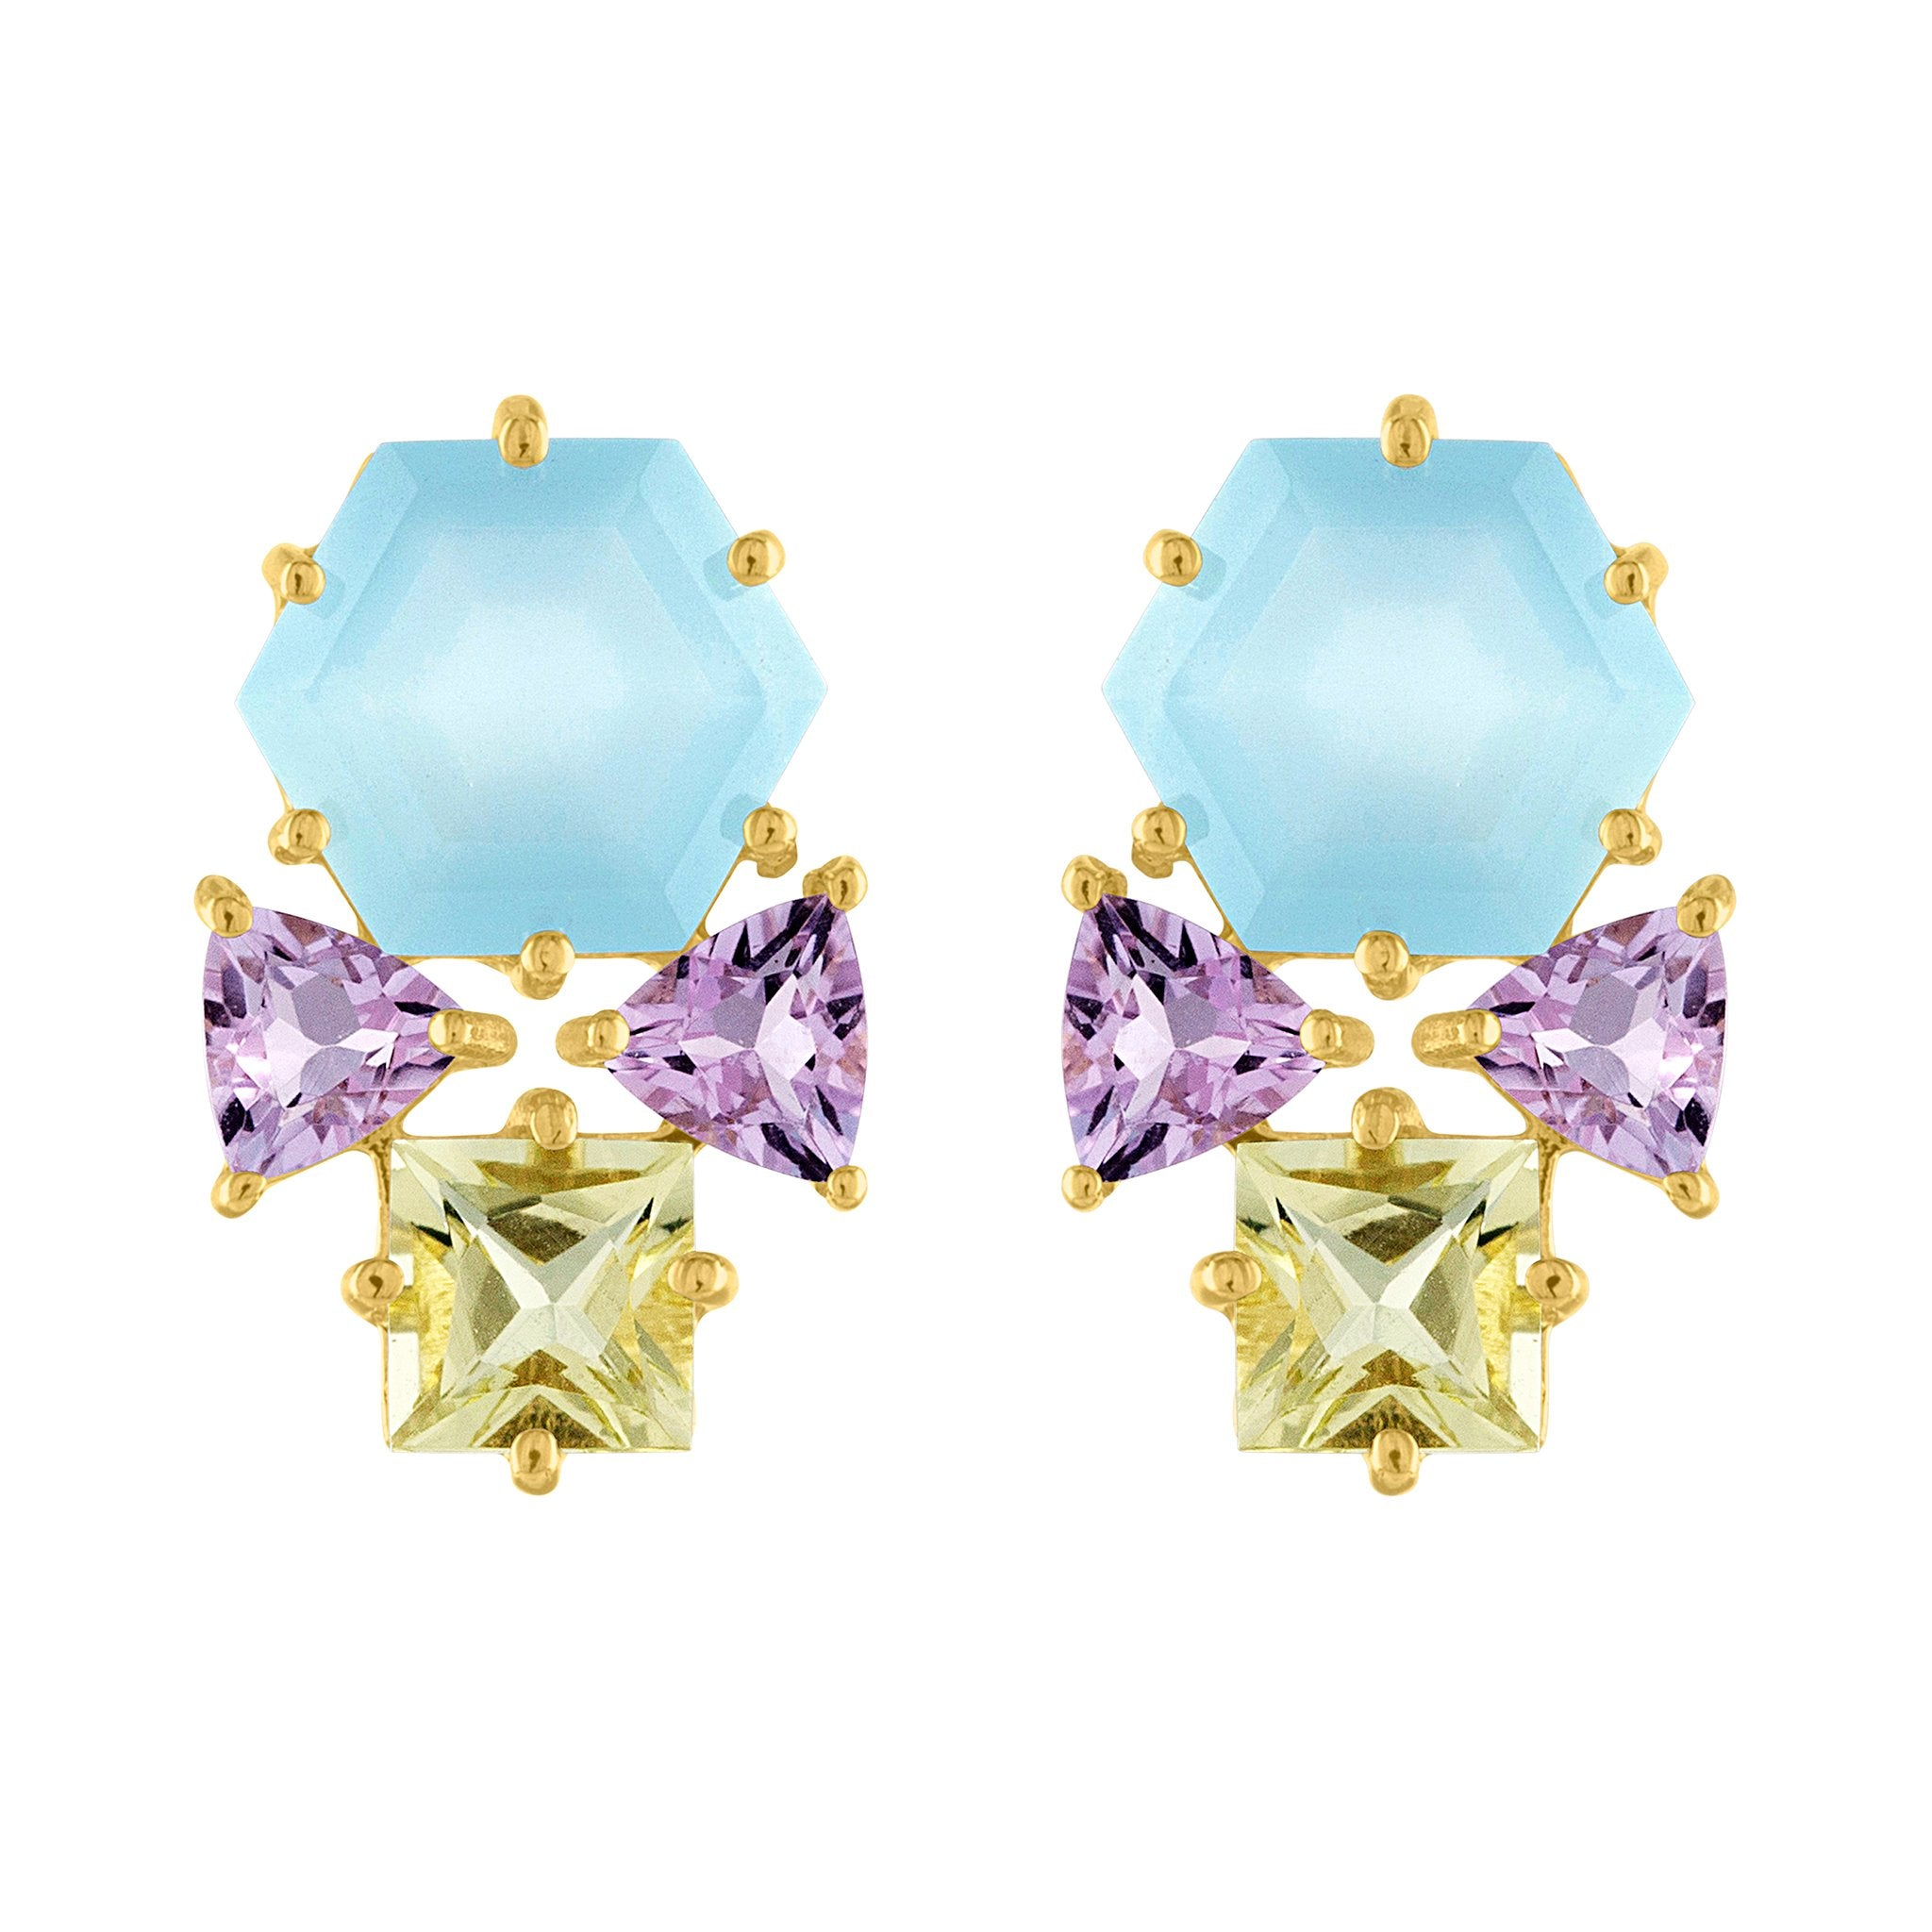 Moon Stud Earrings: 14k Gold, Rainbow Moonstone Hexagon, Apatite, London Blue Topaz